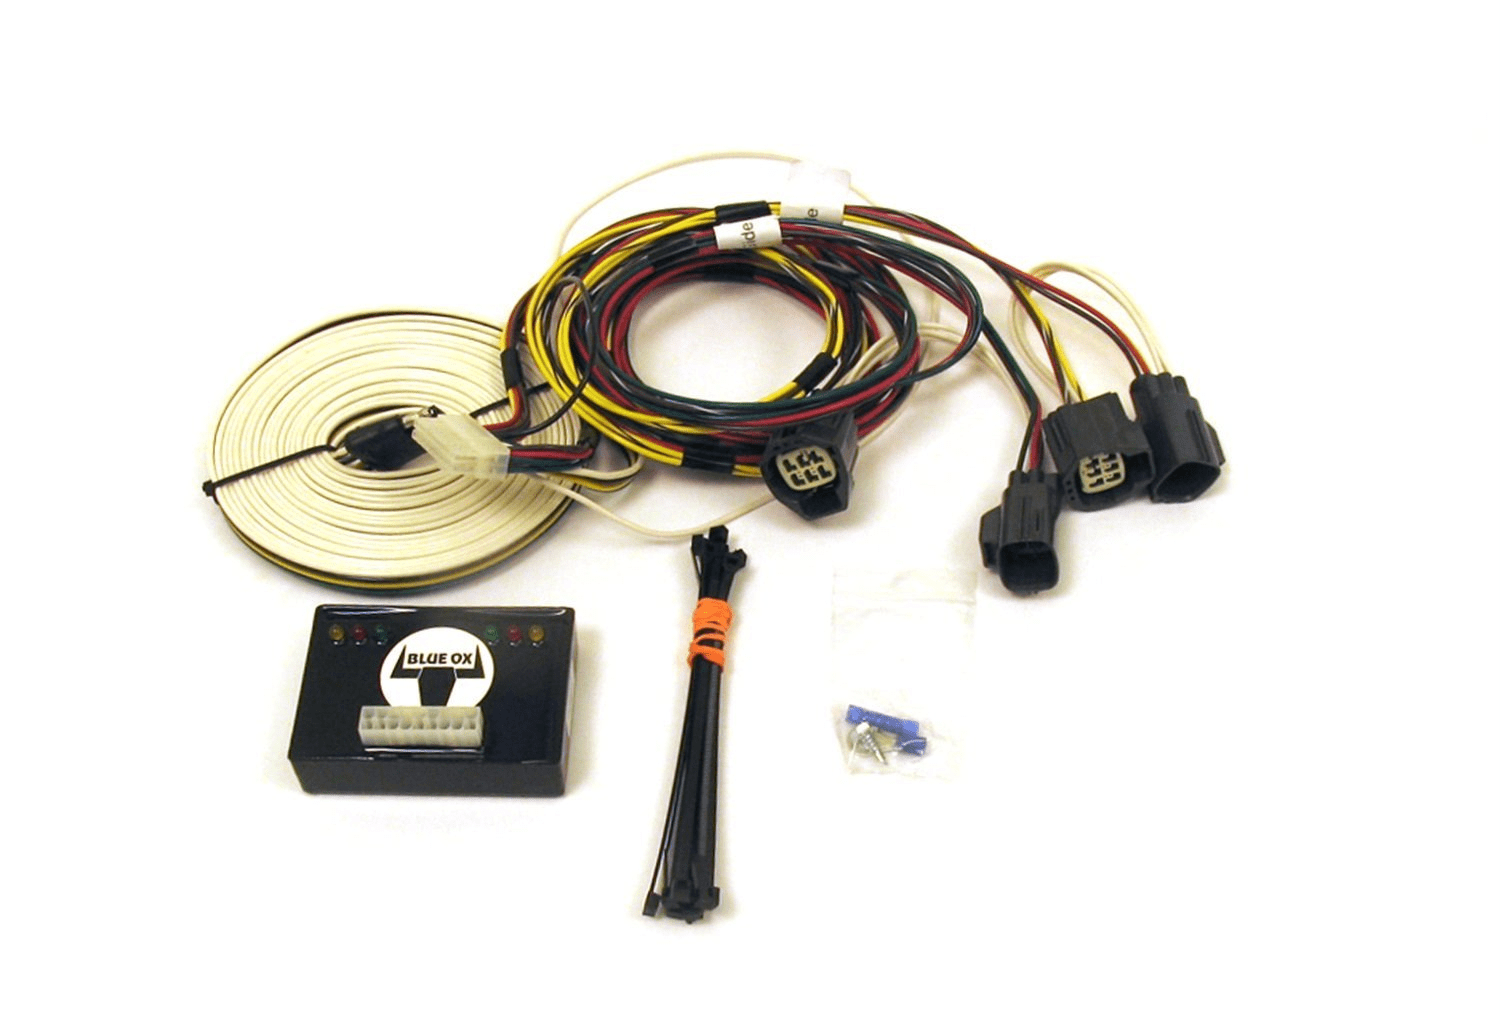 hight resolution of blue ox ez light wiring harness kit for jeep rubicon wrangler bx88285